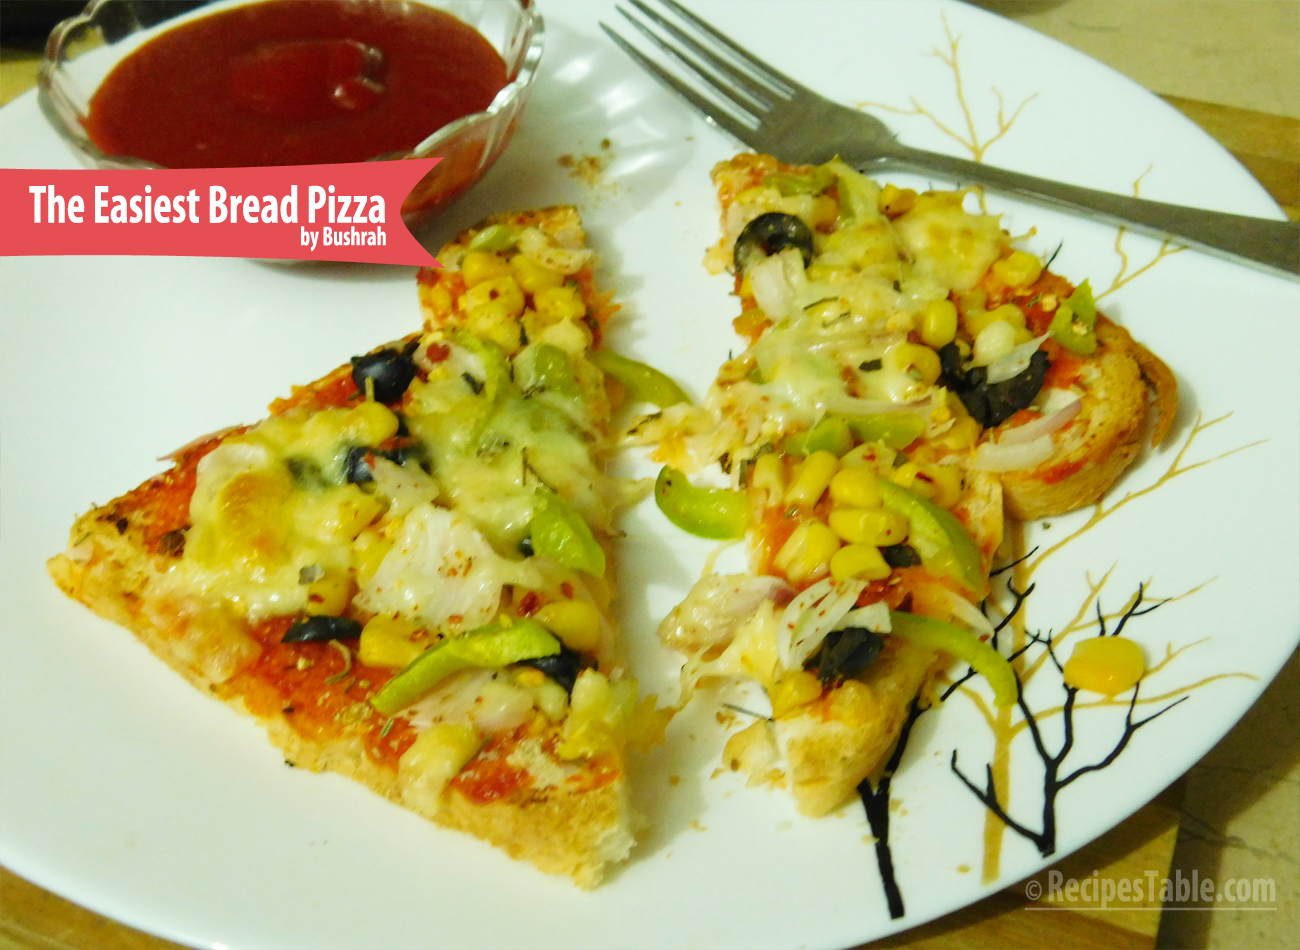 The Easiest Bread Pizza recipe